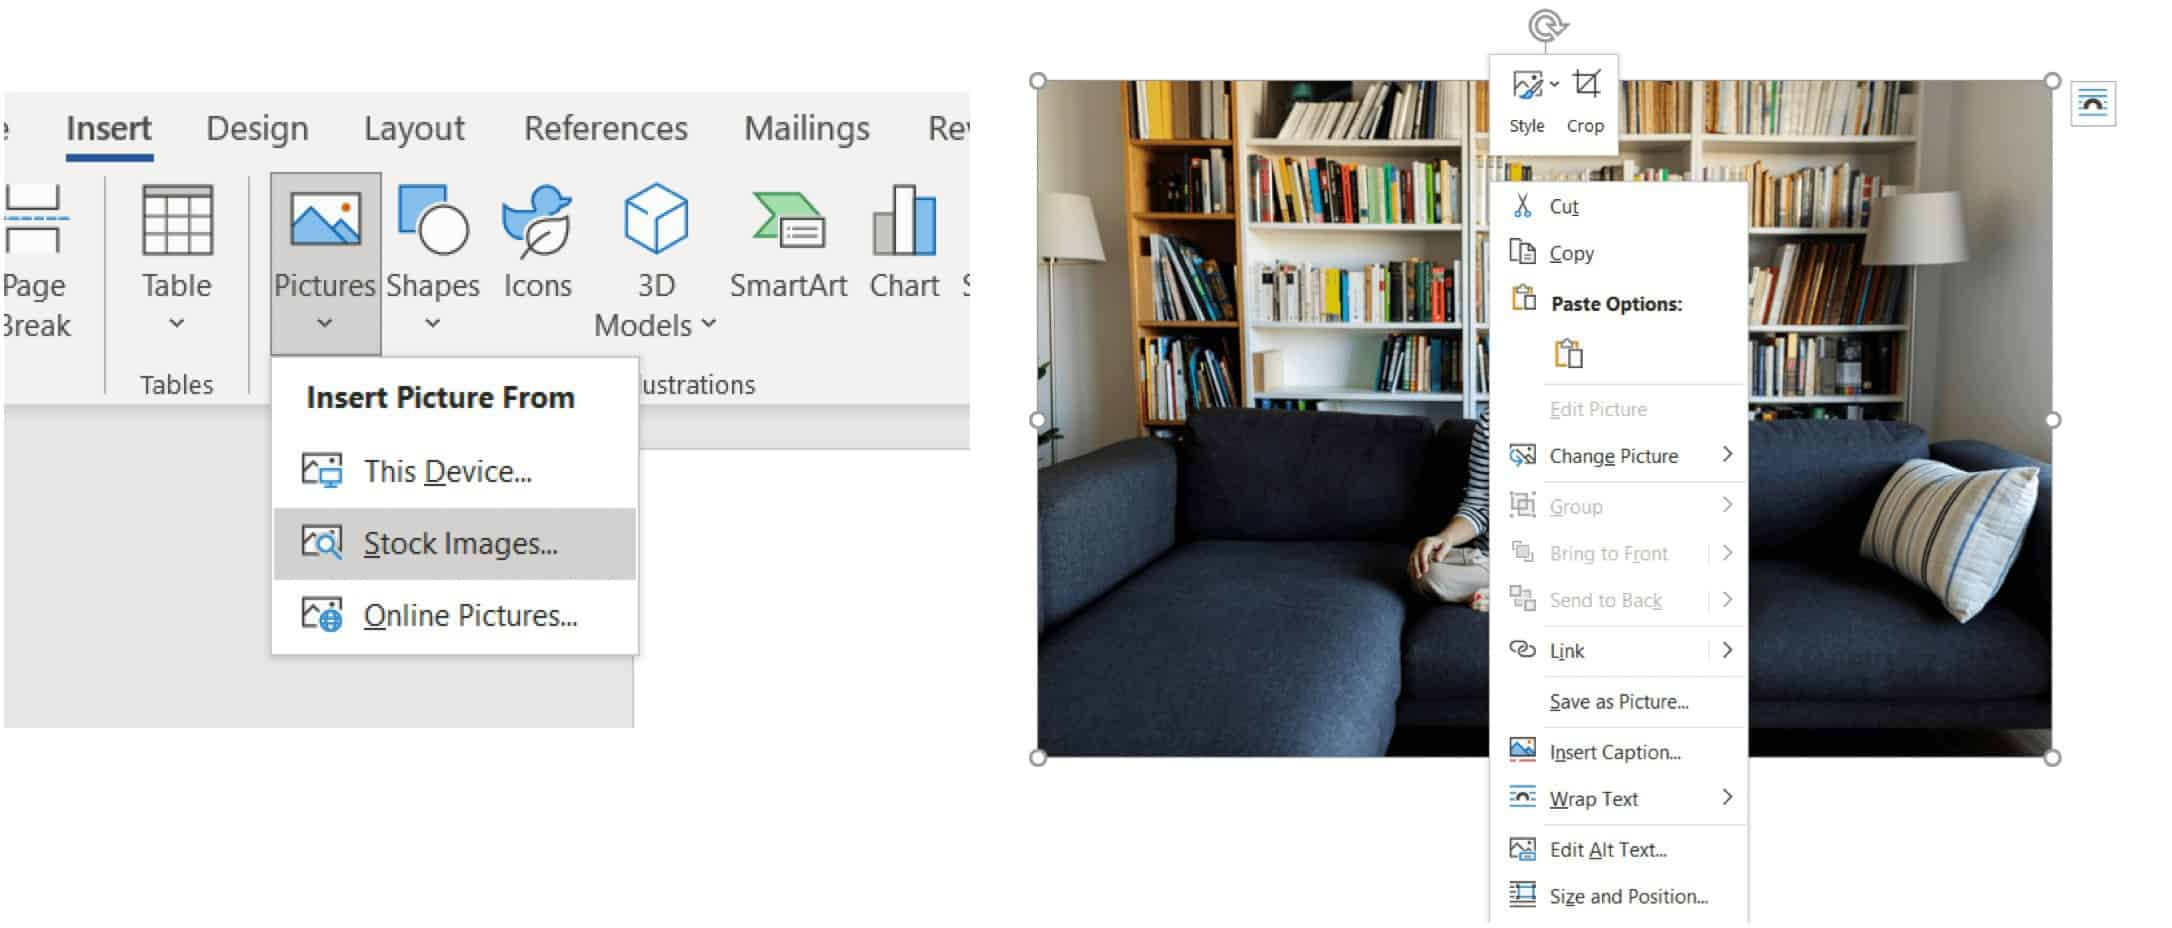 Move Photos Freely Image insert into Word